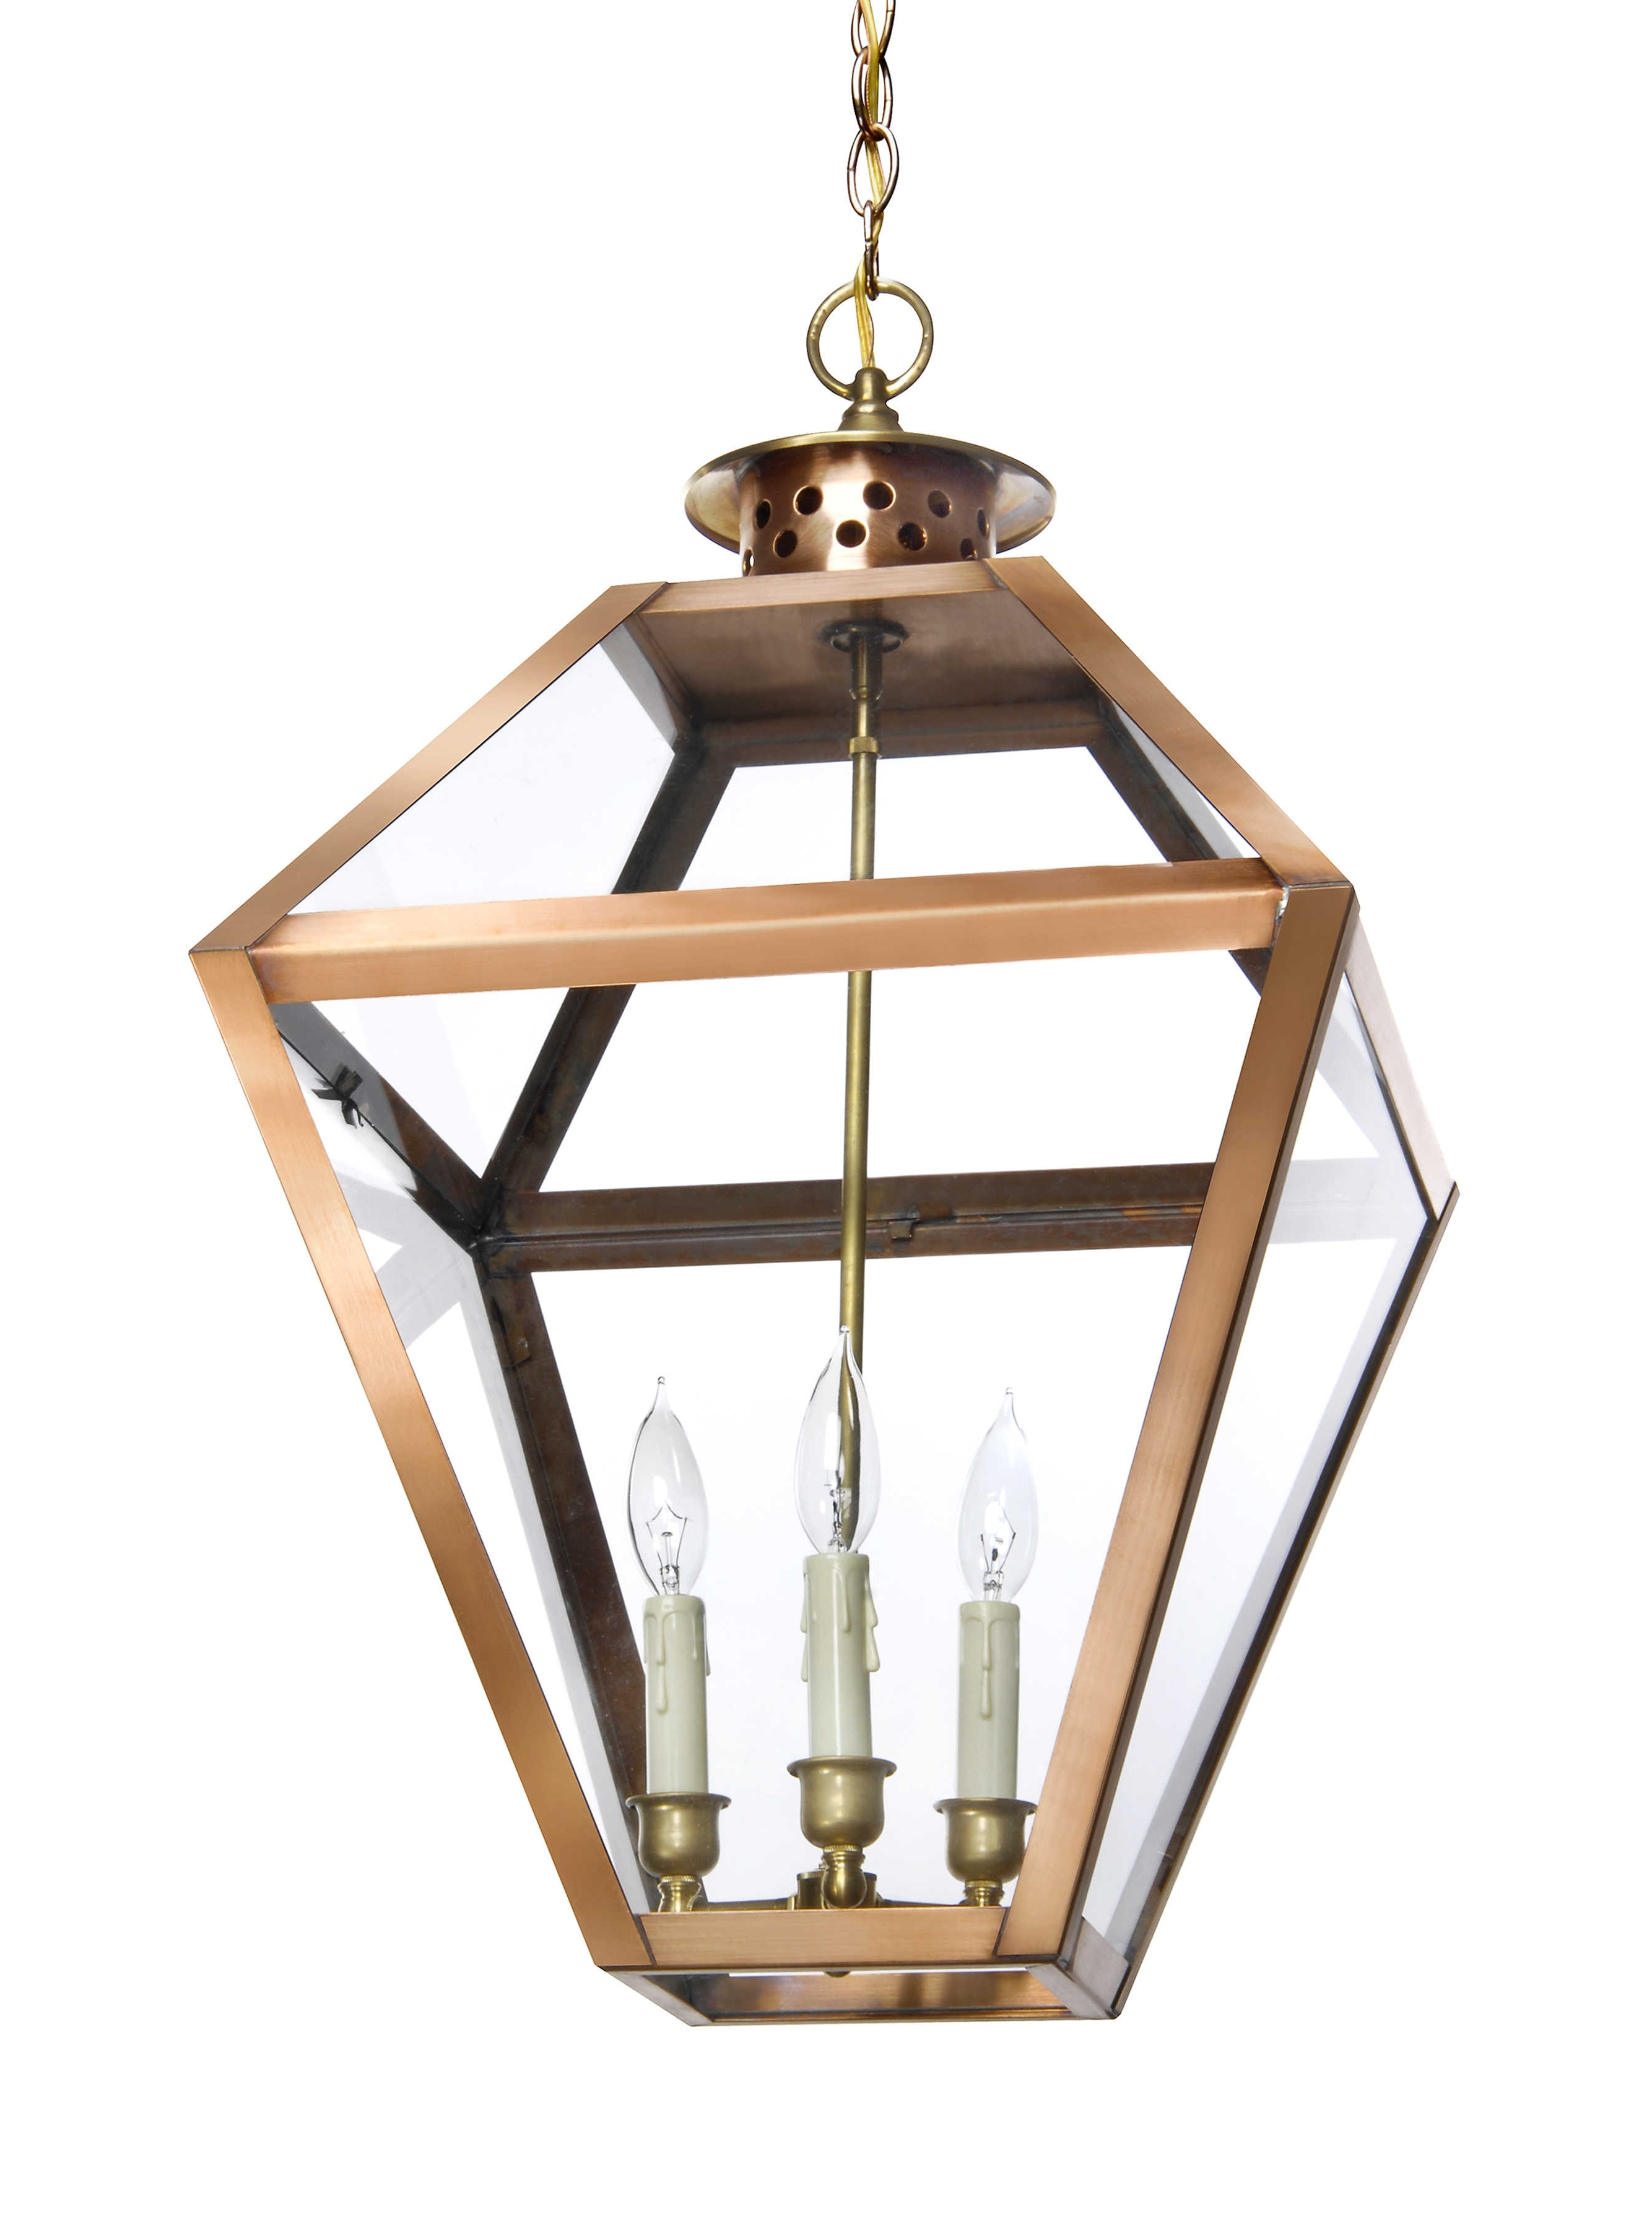 Bs 16 Hanging Light, Copper Lantern, Gas And Electric Lighting Within Latest Outdoor Hanging Gas Lanterns (View 2 of 20)